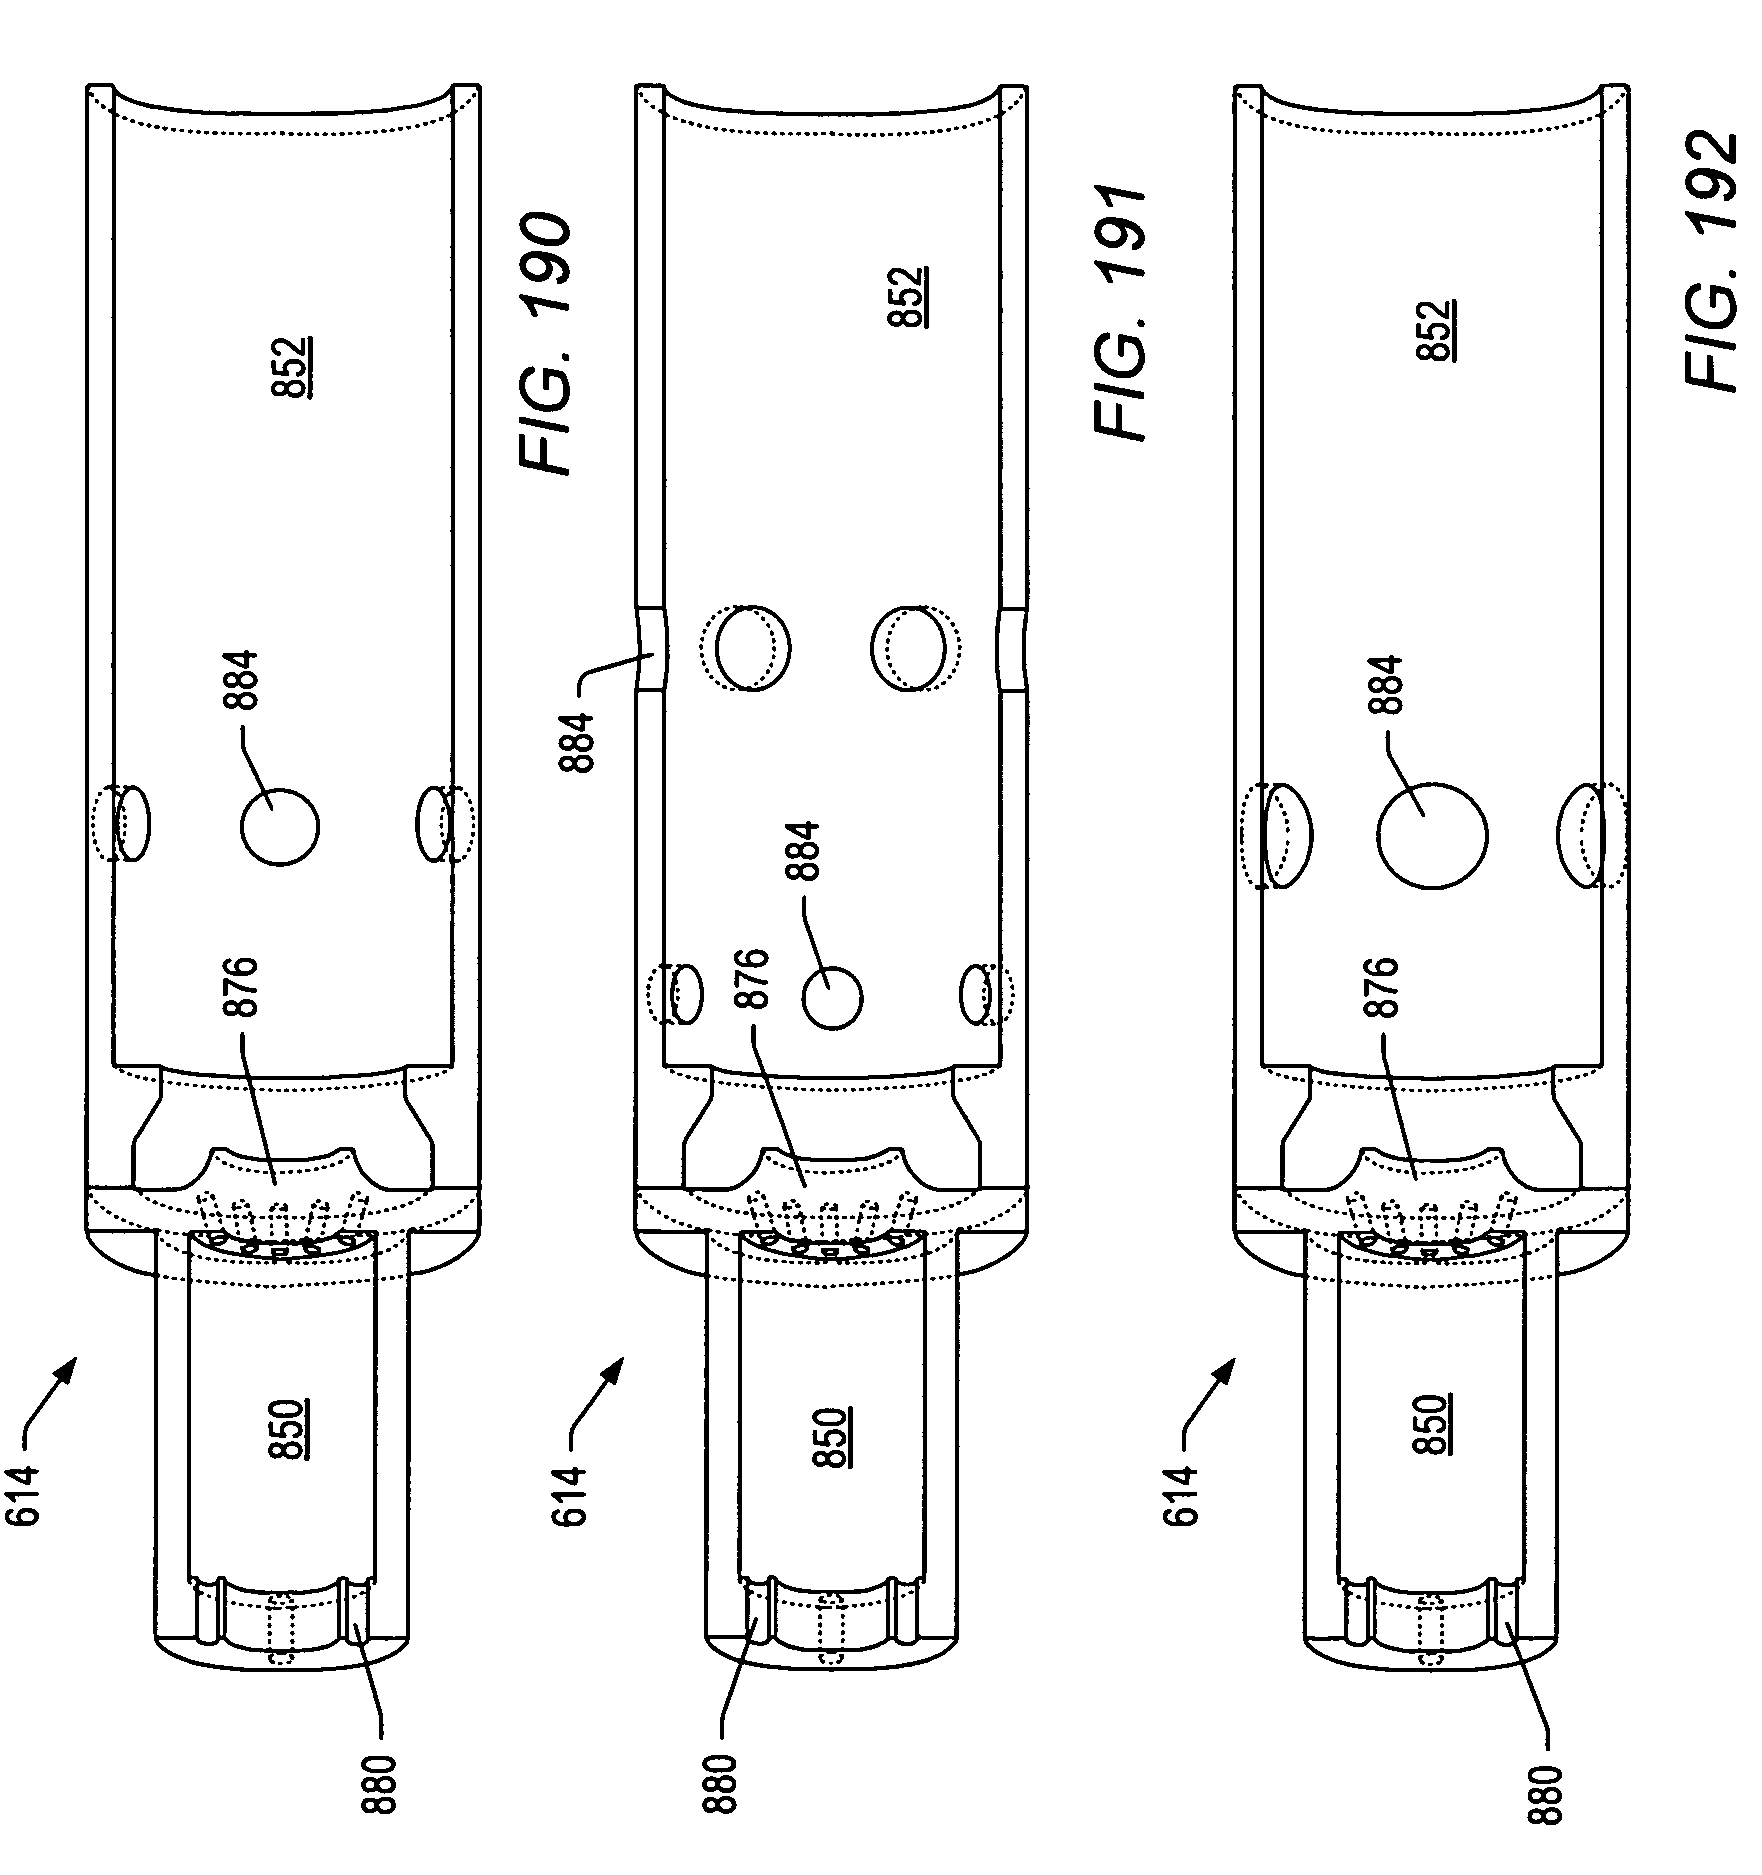 Patent Us 7931086 B2 Signal Tracer And Injector Raul39s Diagrams Collection